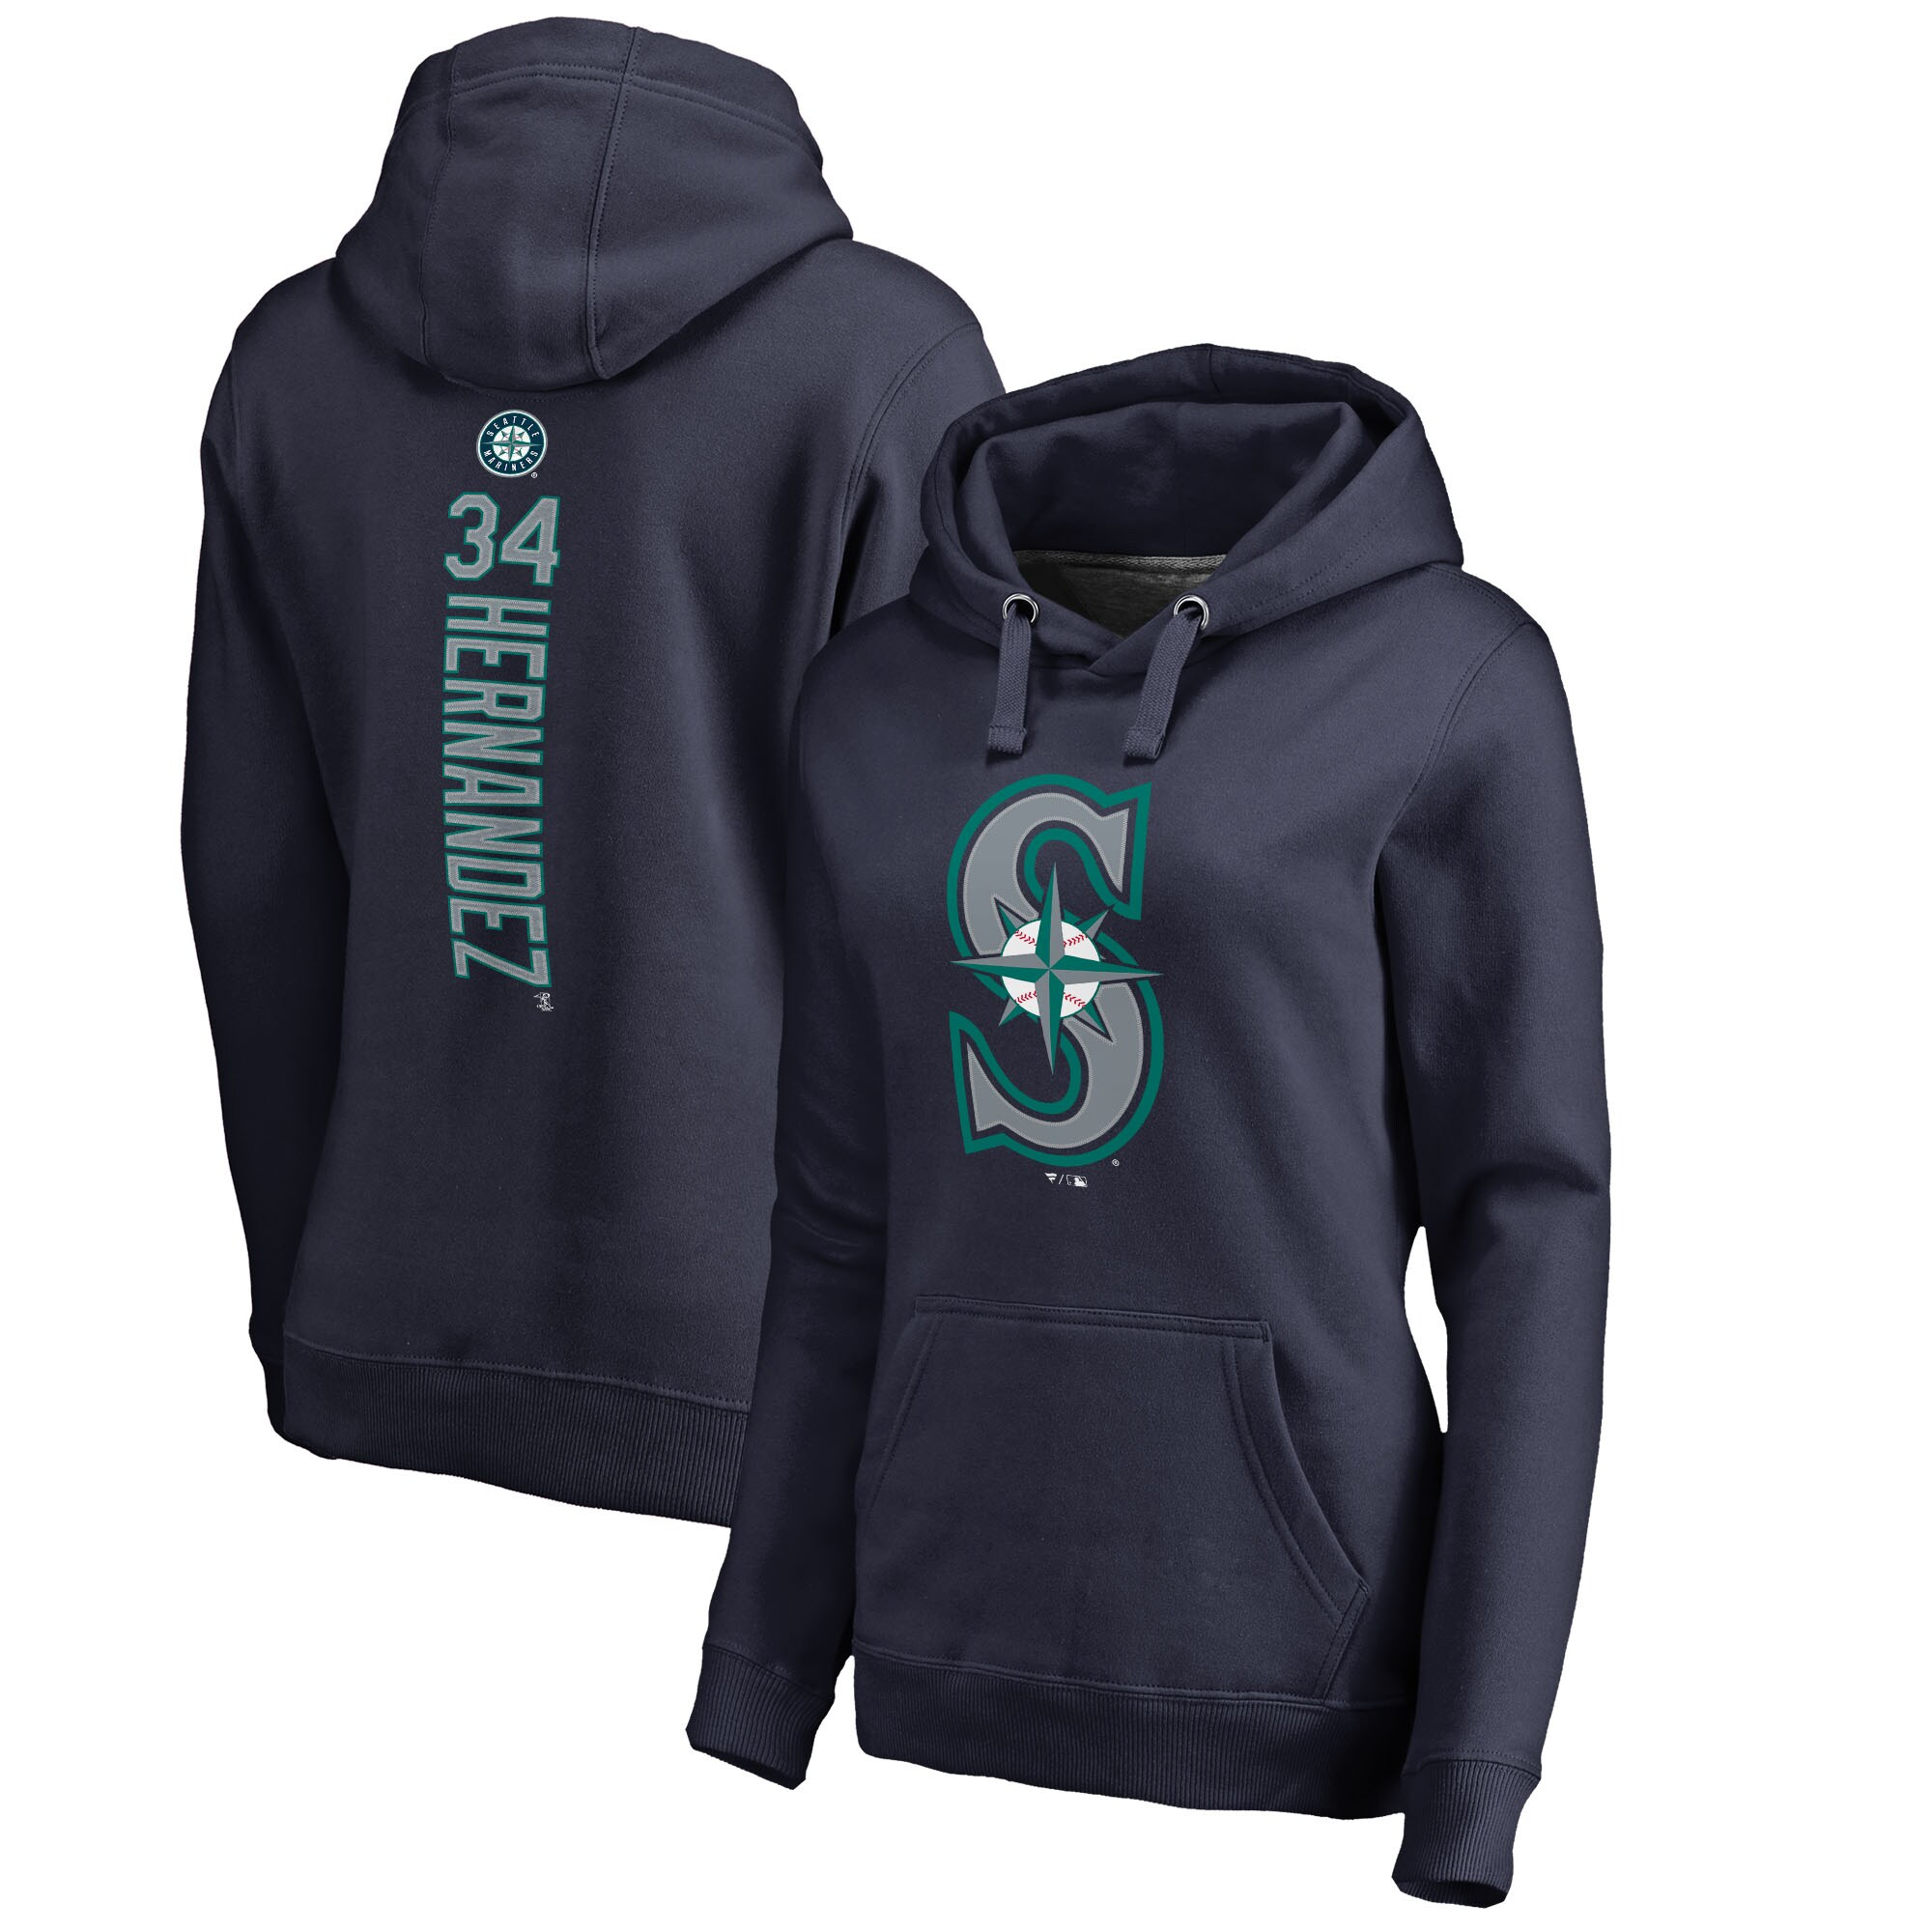 Felix Hernandez Seattle Mariners Fanatics Branded Women's Backer Pullover Hoodie - Navy